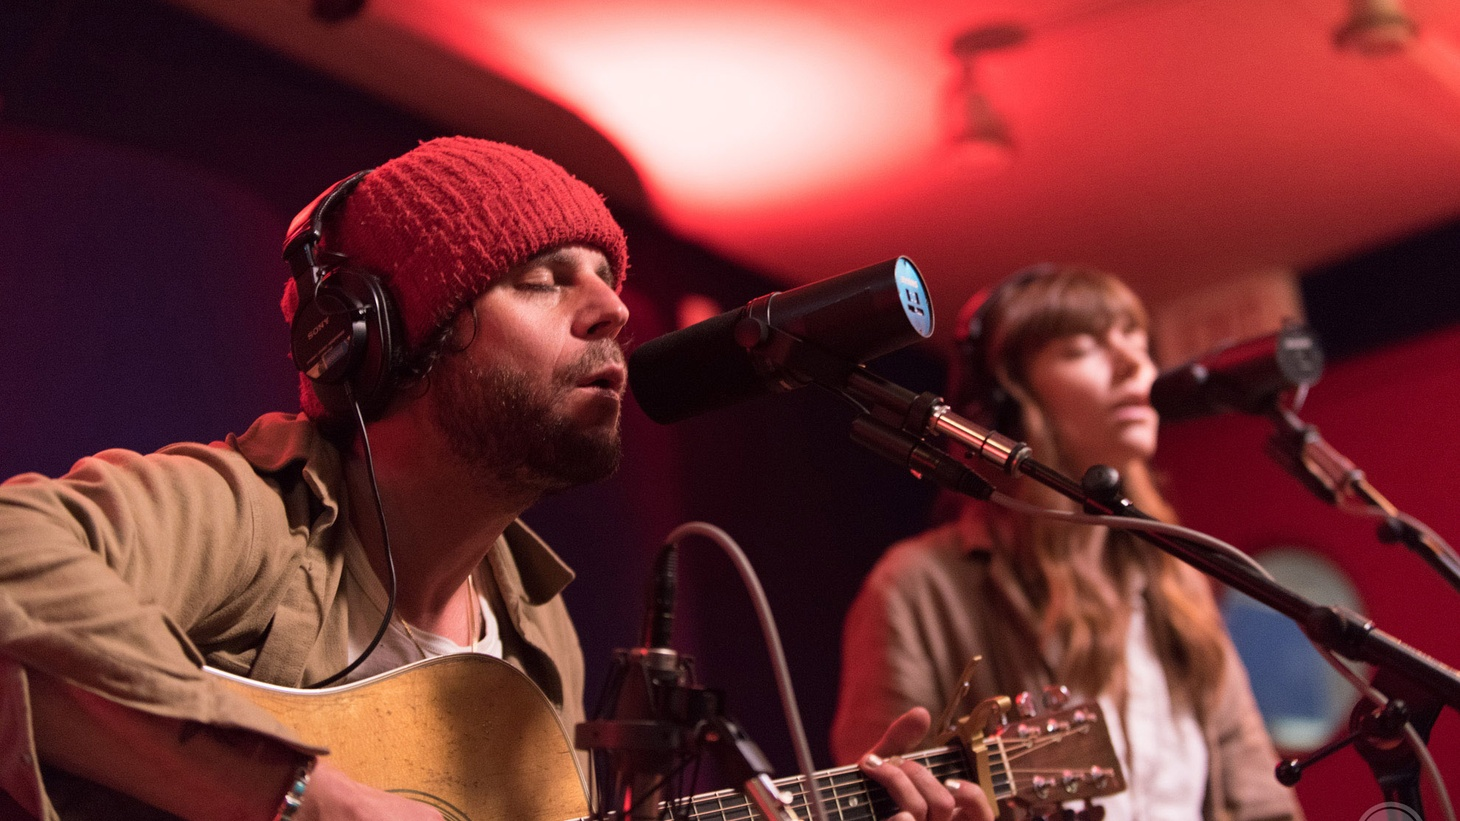 """Ever wonder what's behind a song? Our new Friday feature asks some of our favorite artists just that question! Today, Langhorne Slim goes behind the scenes on his song """"Never Break"""" and offers the exclusive MBE version."""